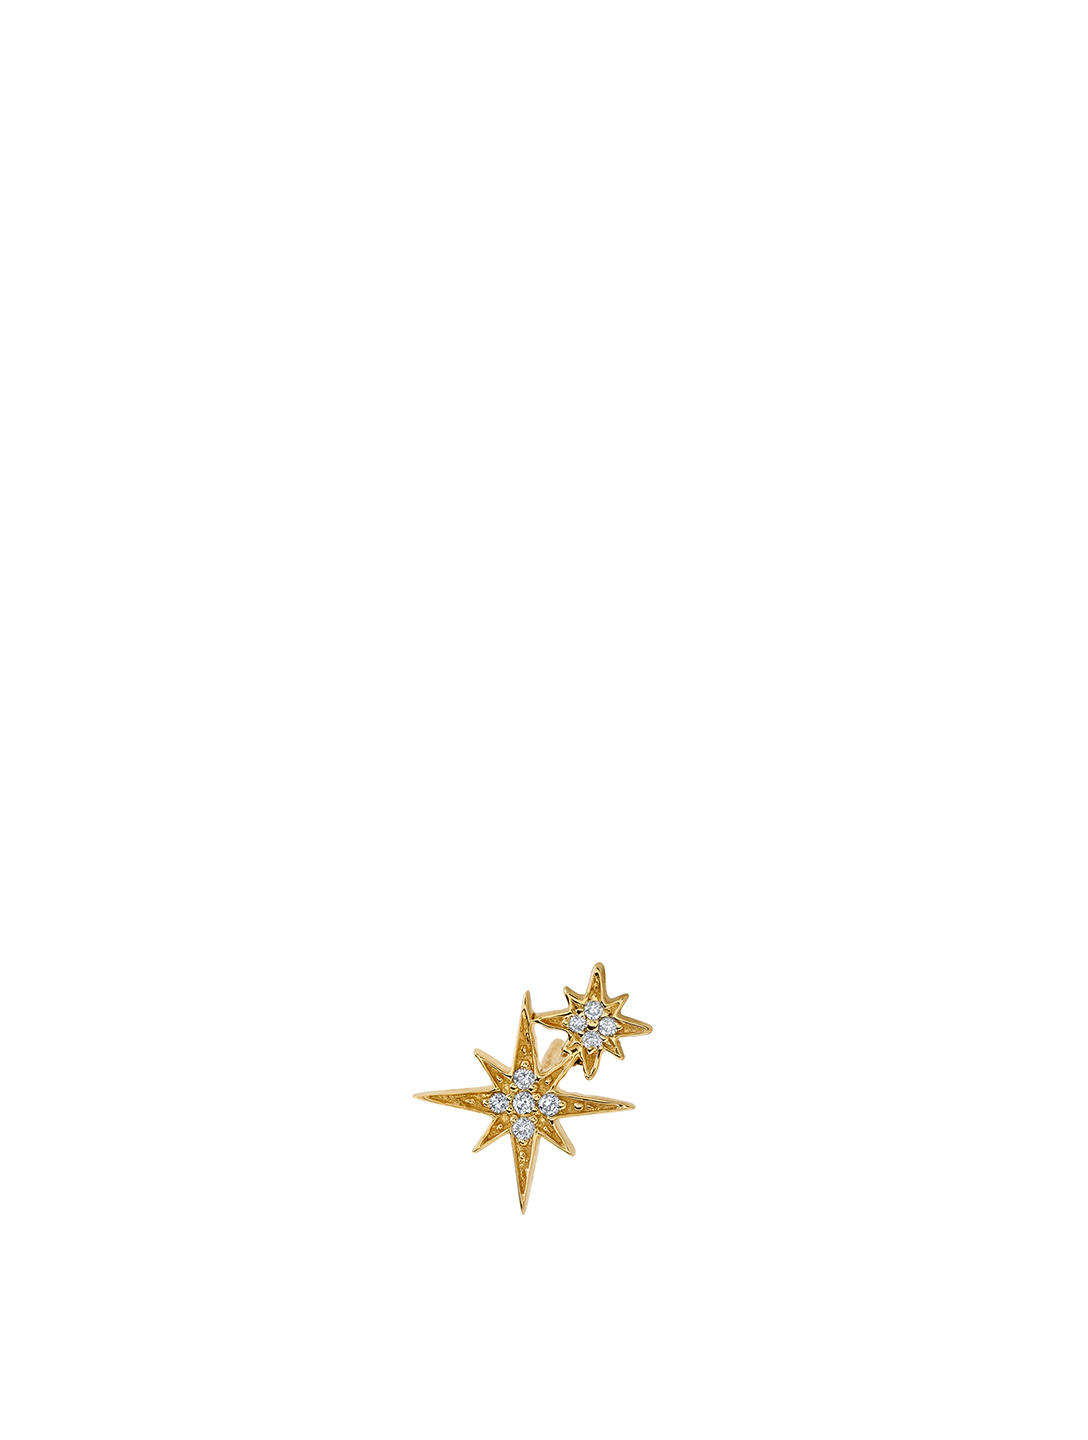 SYDNEY EVAN 14K White Gold Double Starburst Stud Earring Women's Gold